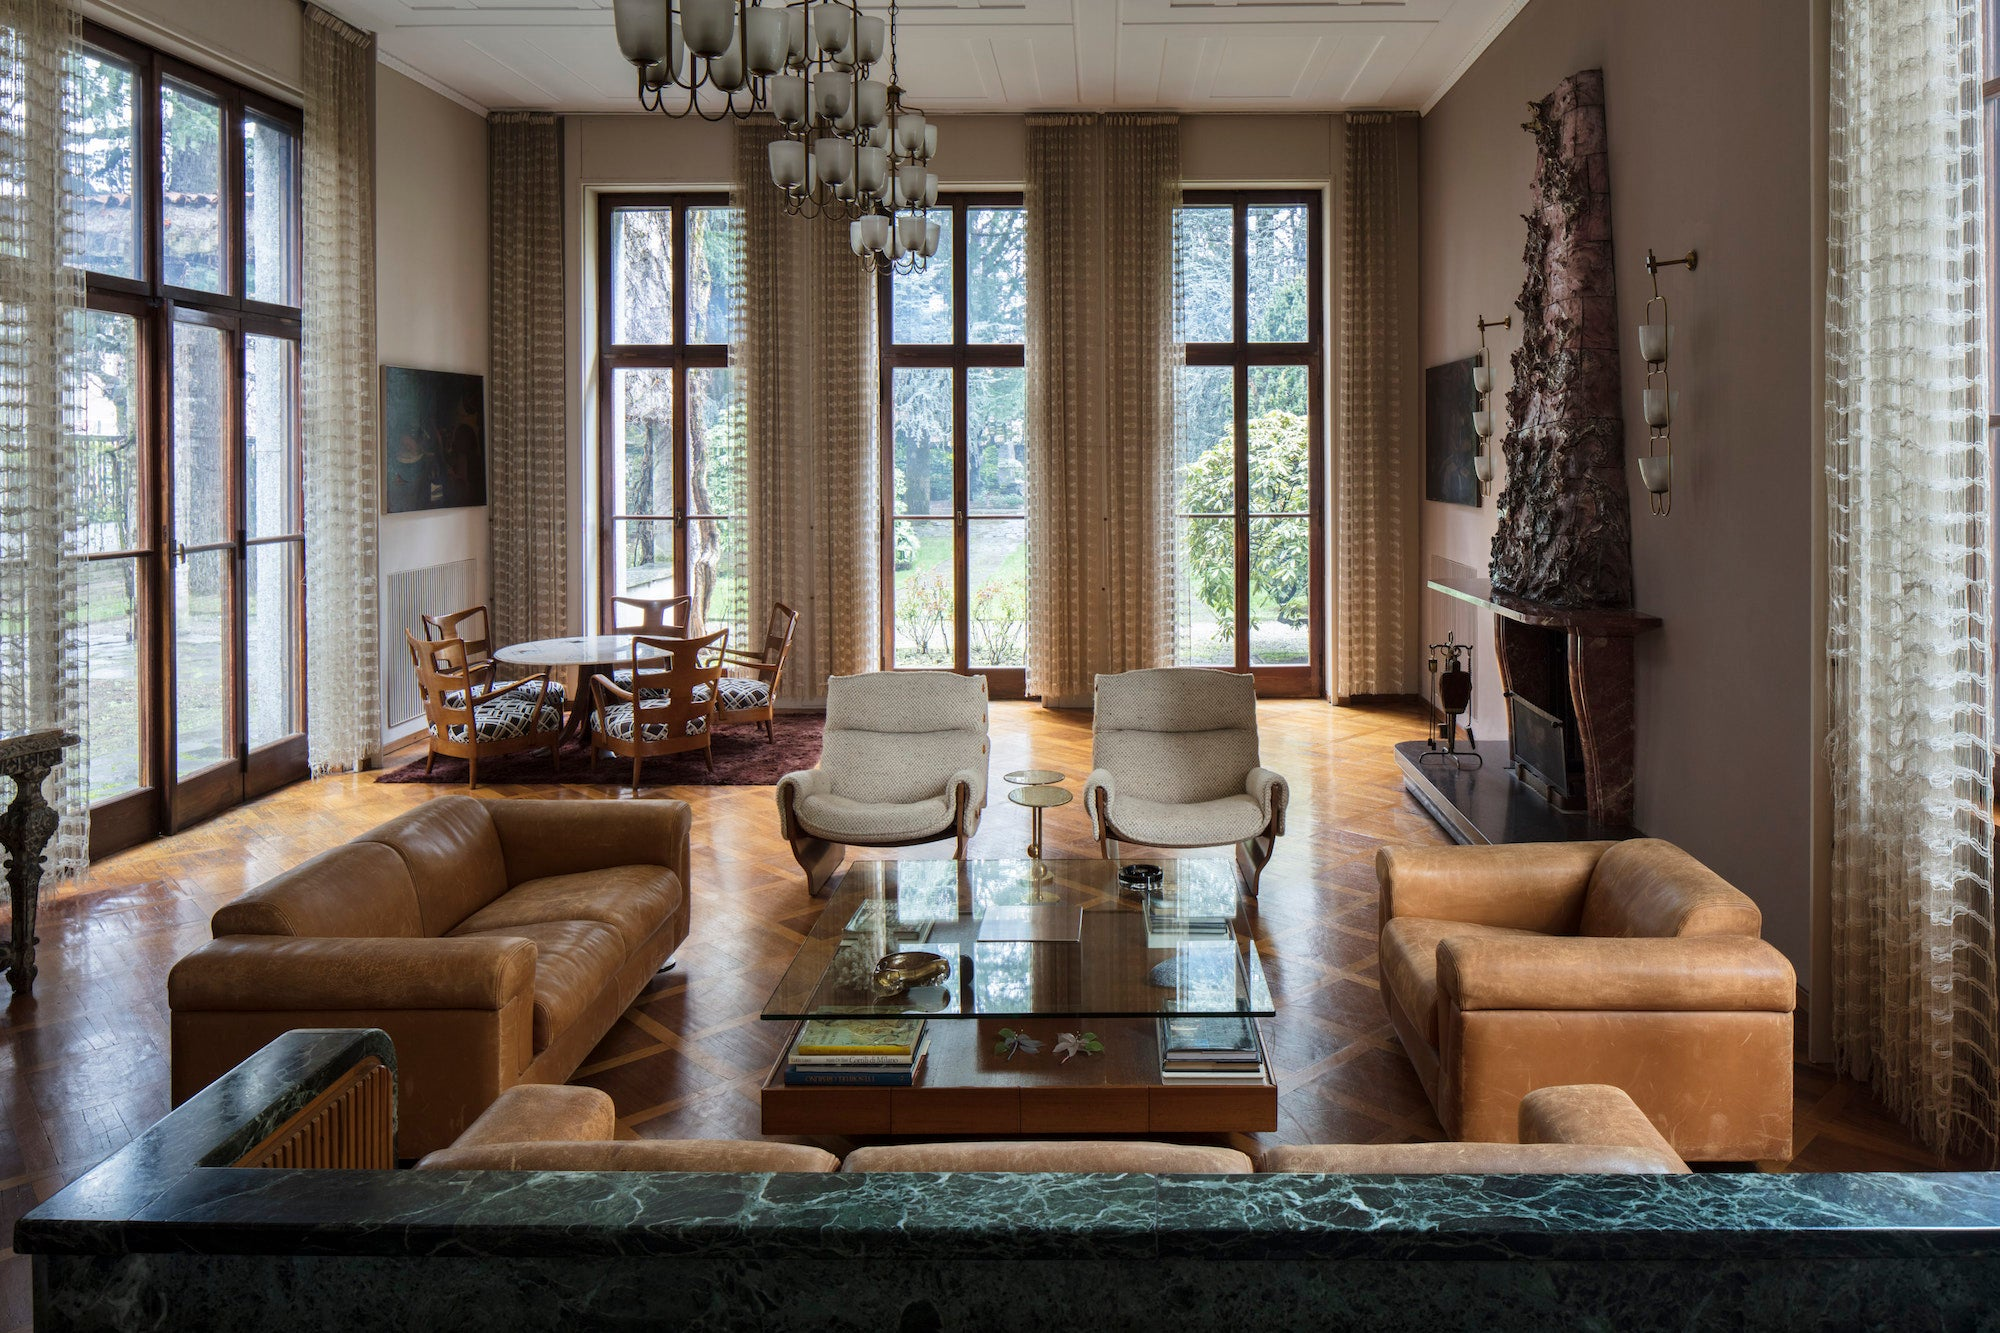 The sunken living room of Villa Borsani